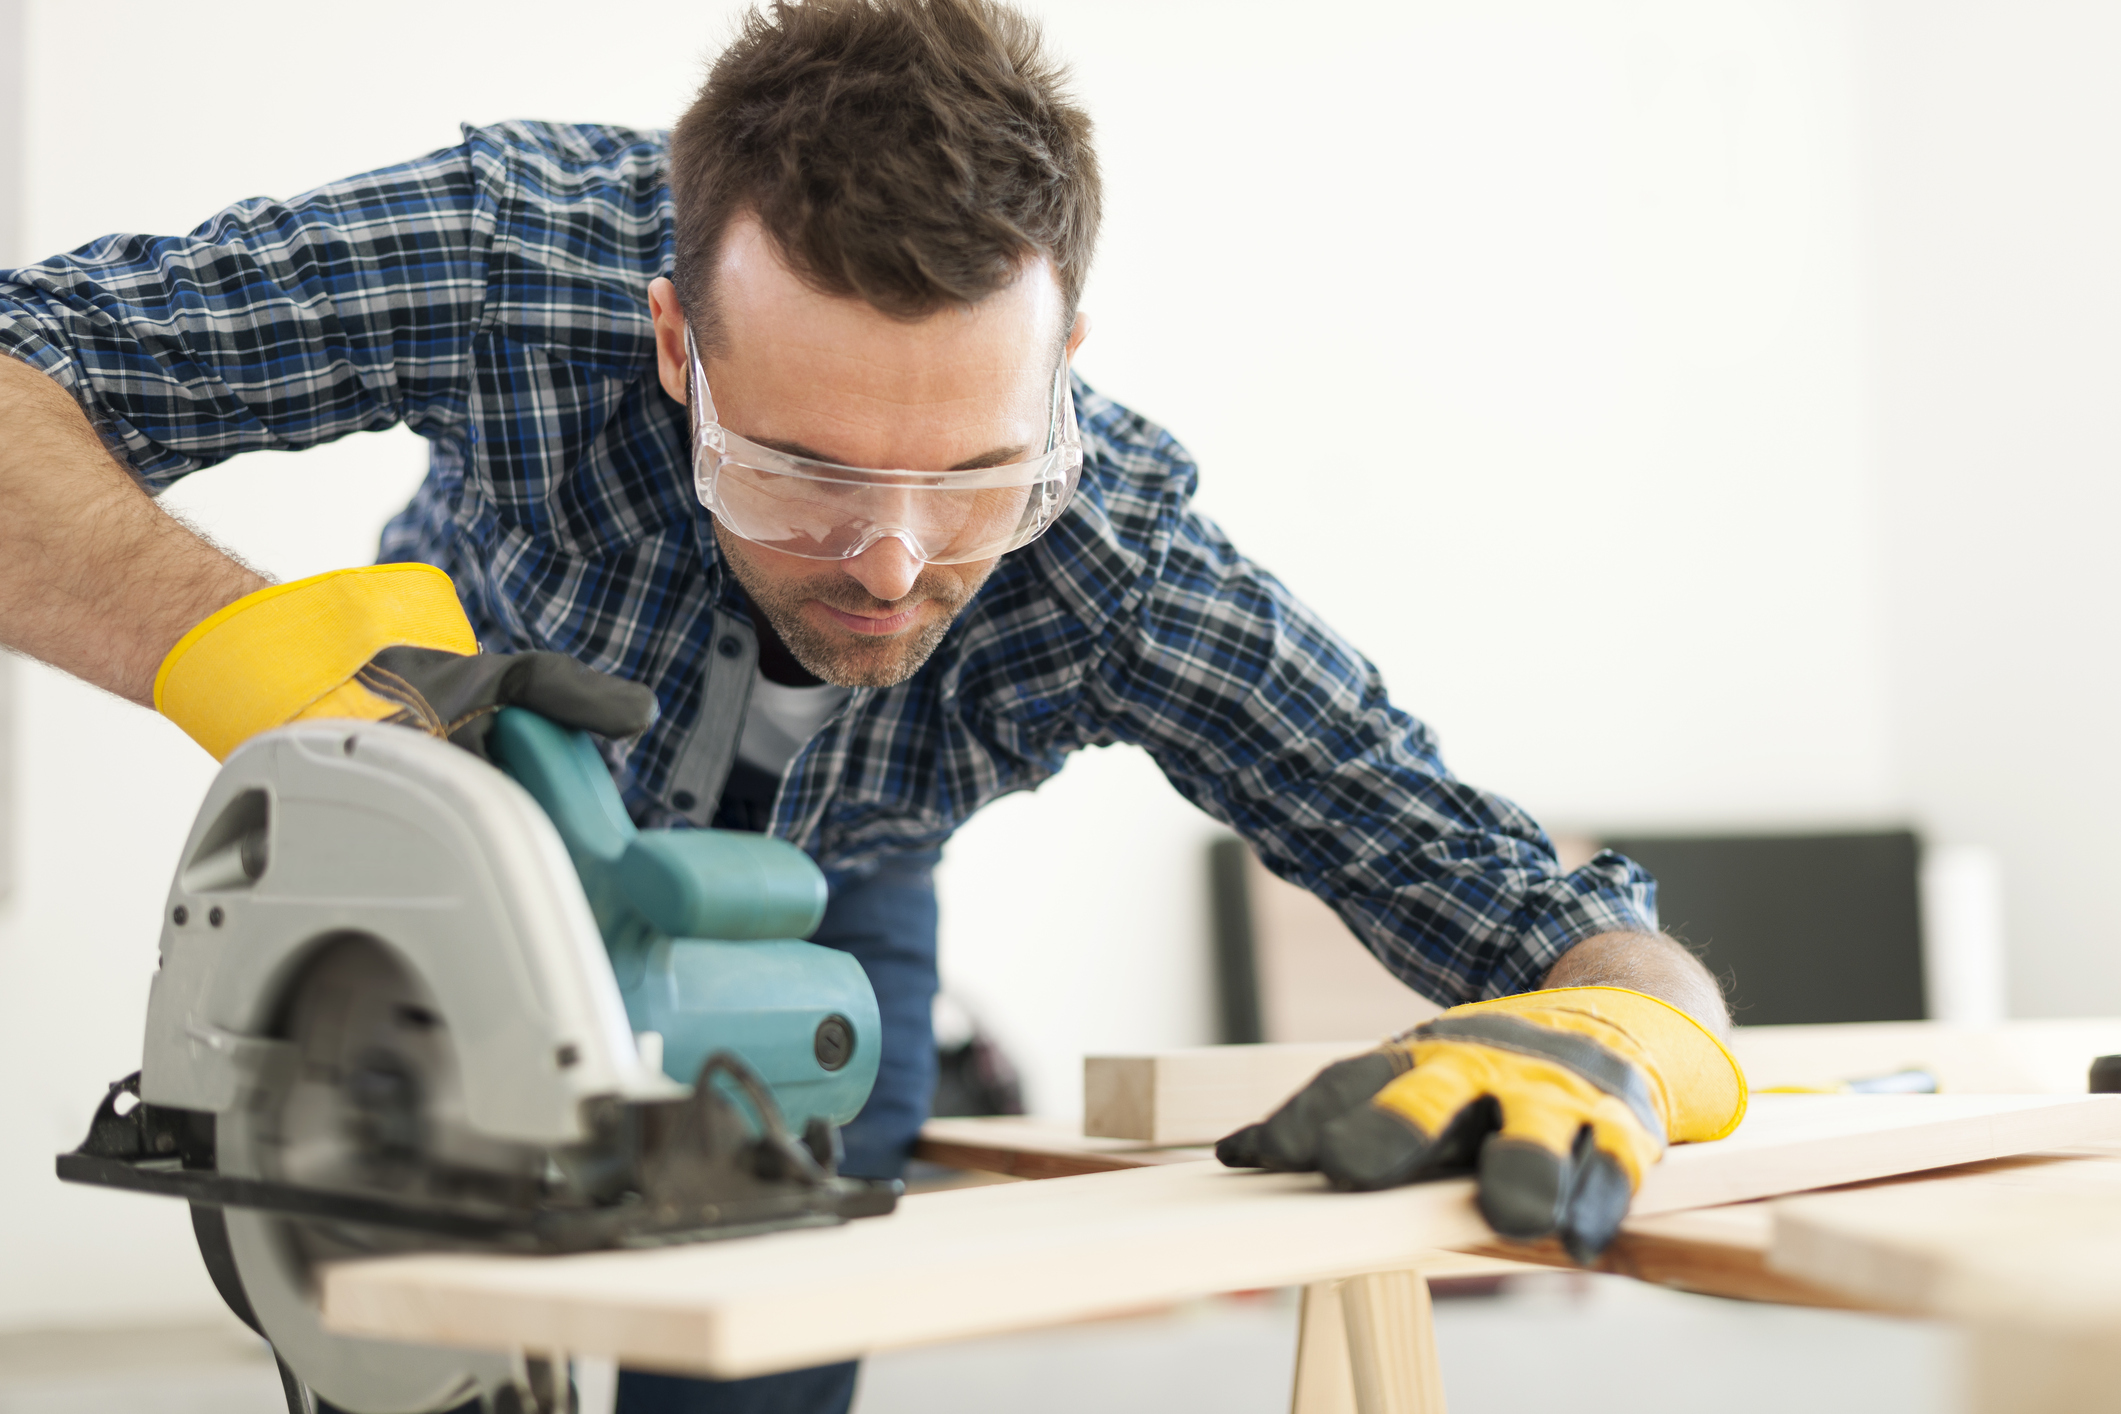 What Are The Different Types Of Power Tools: The Beginner's Guide To Saws